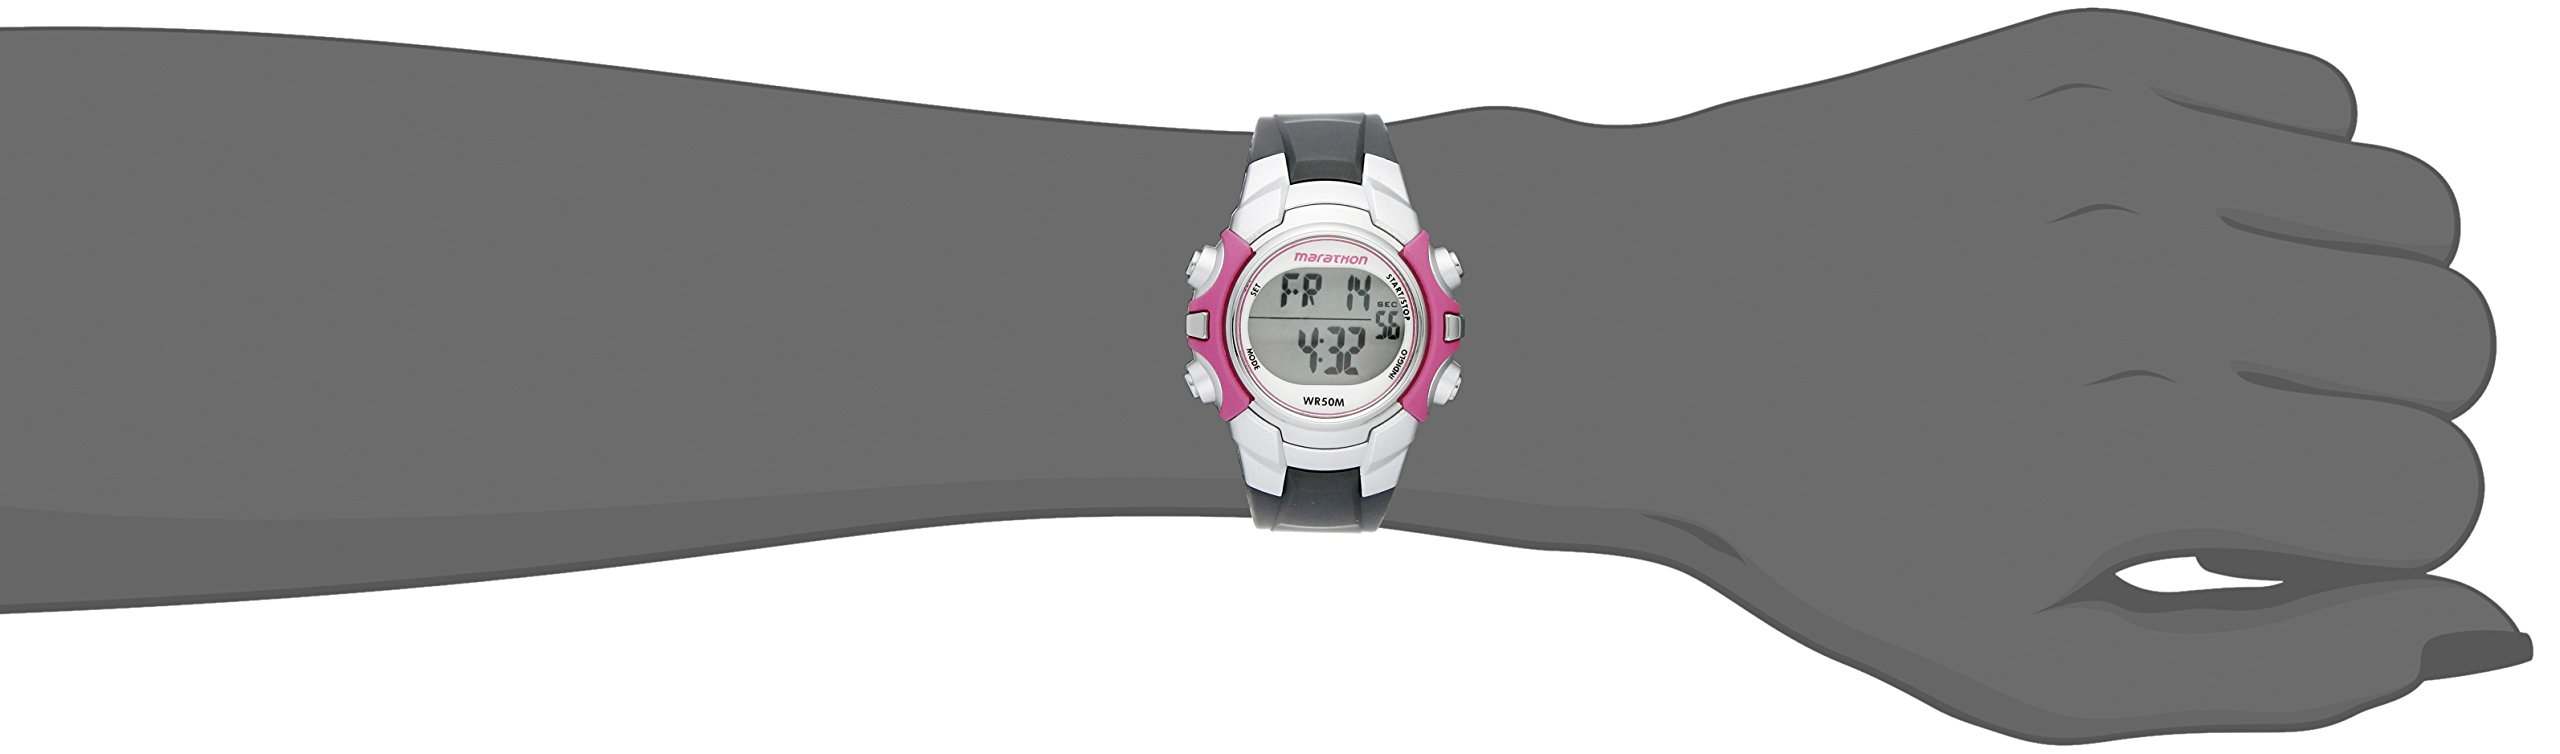 Marathon by Timex Women's T5K646 Digital Mid-Size Gray/Pink Resin Strap Watch by Timex (Image #3)